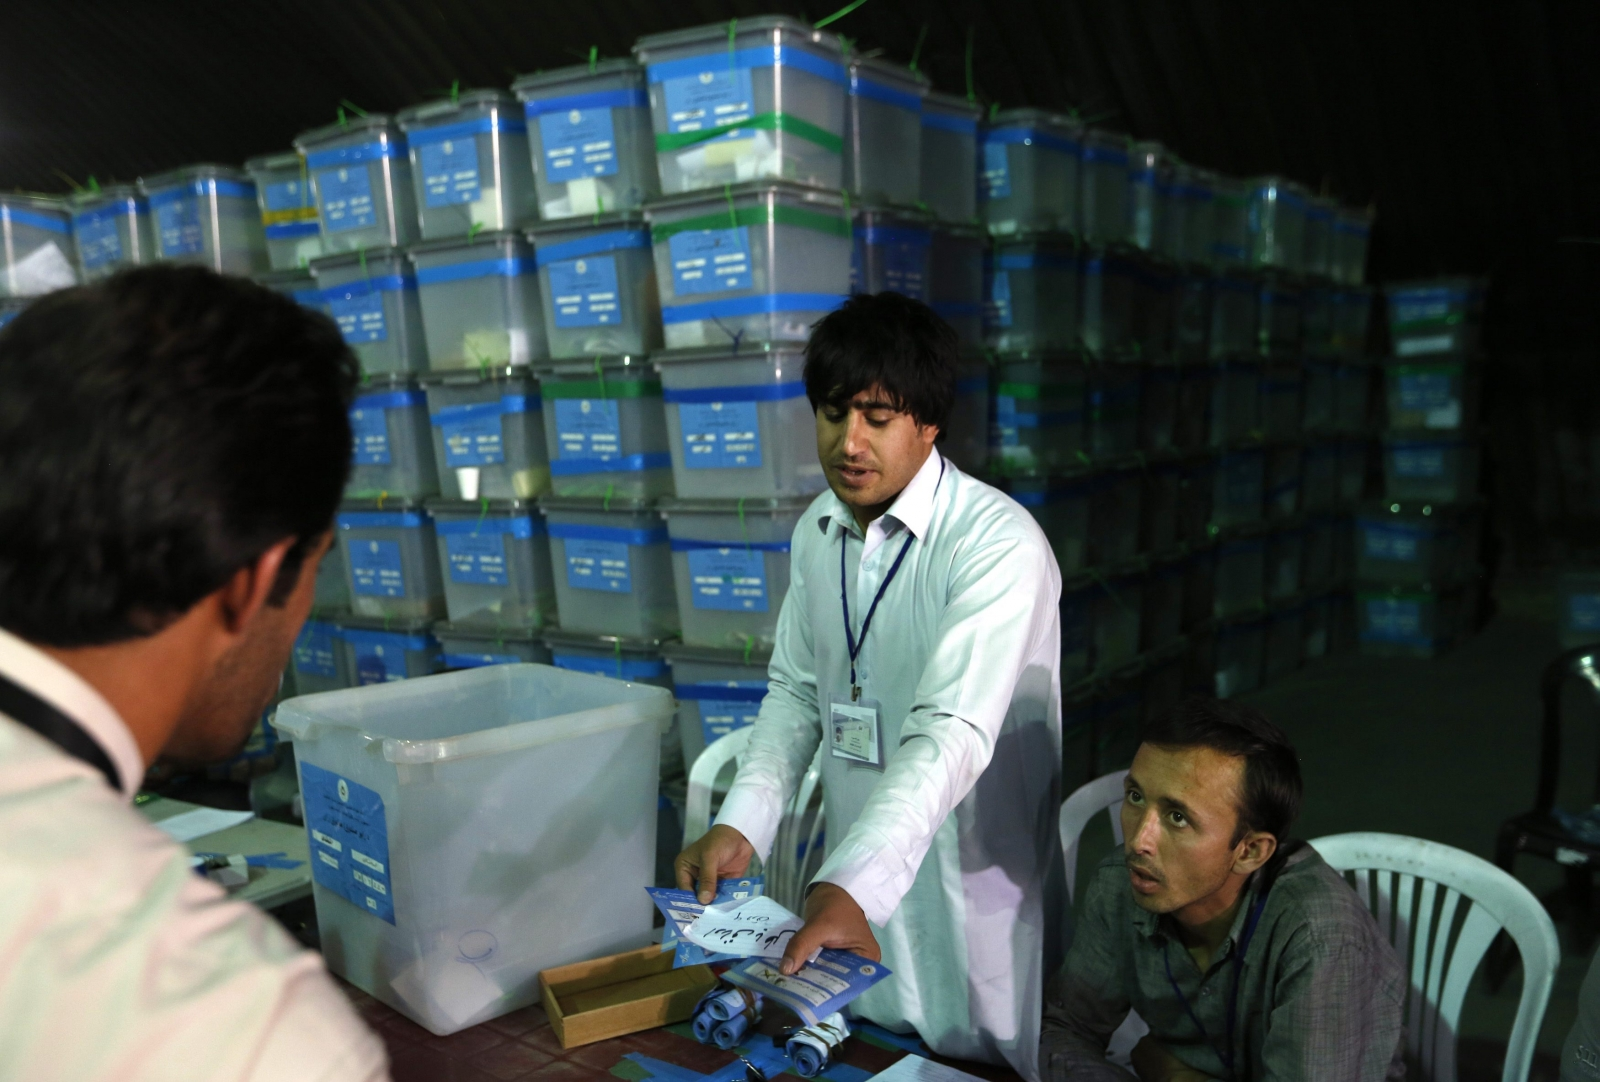 UN: 'Not Possible' to Finish Afghan Vote Audit by Sept. 2